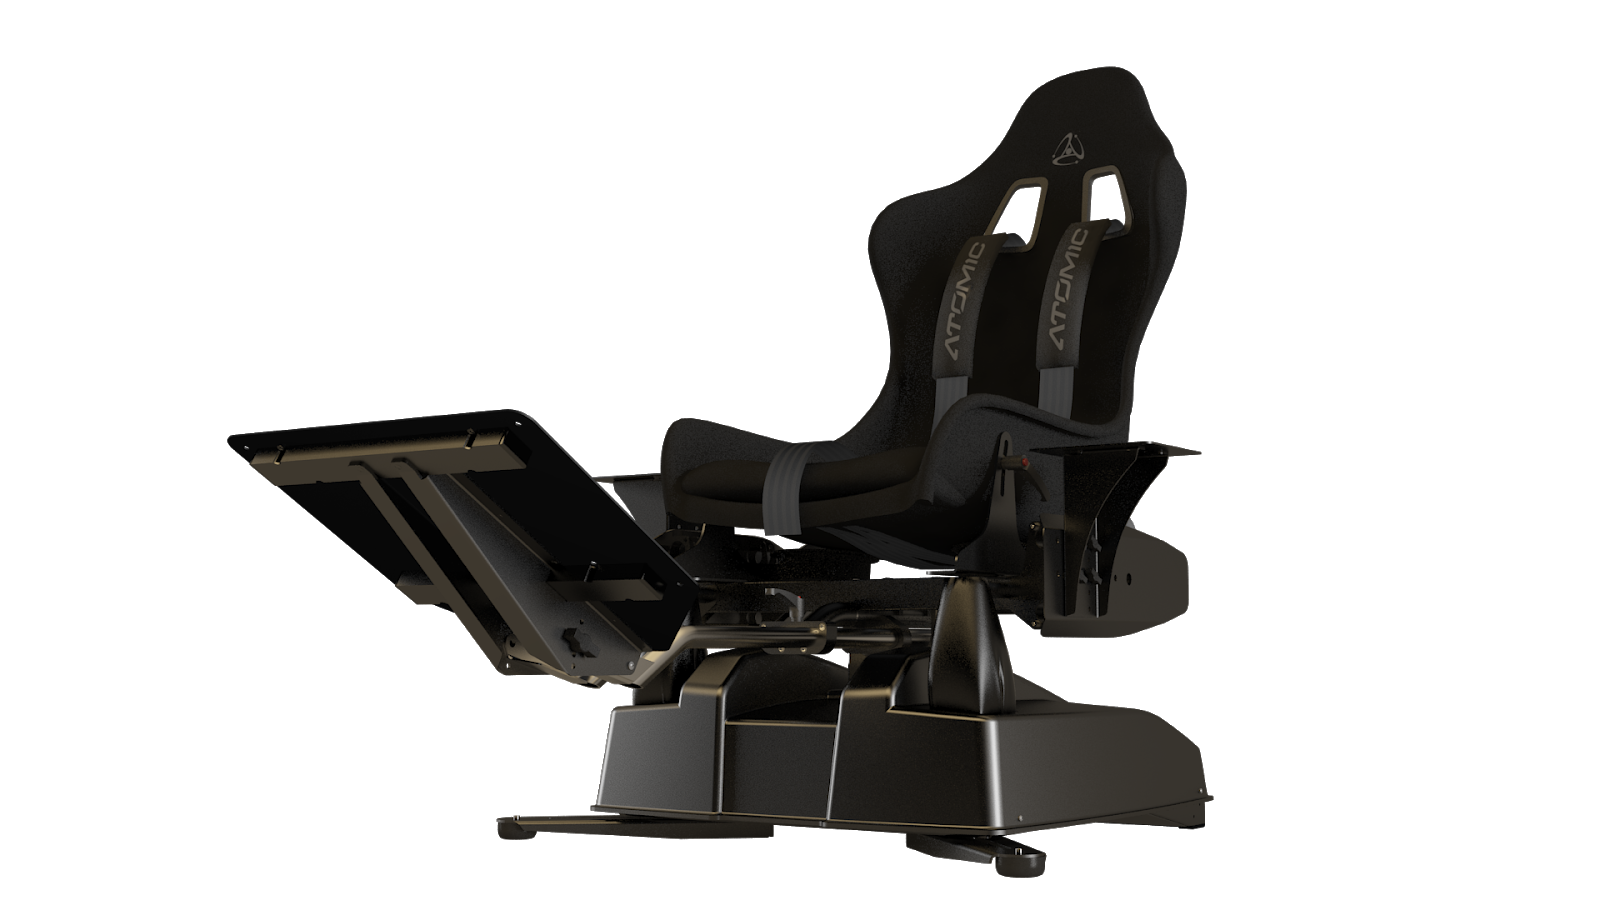 HOTAS flight simulator